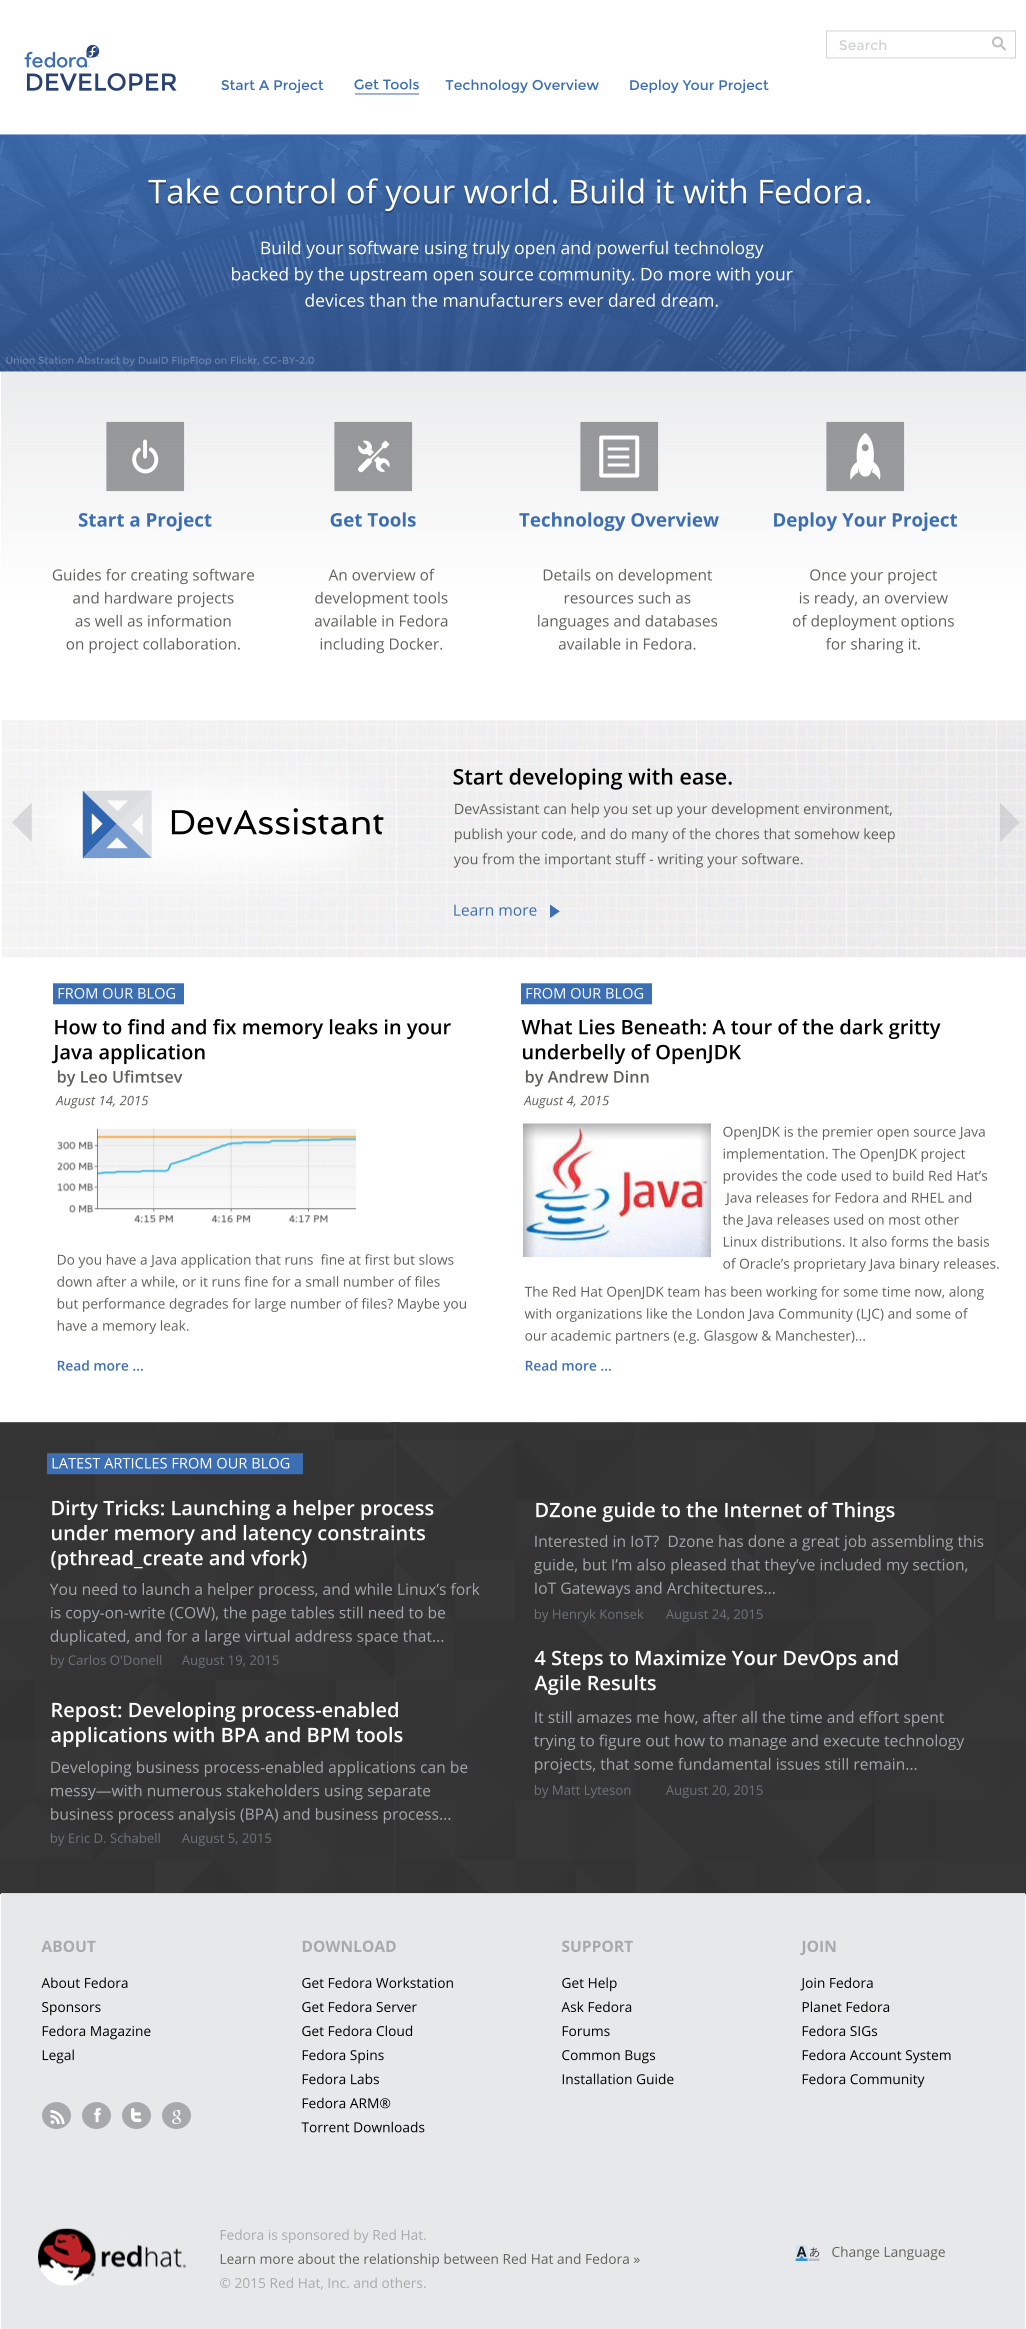 Mockup for the front page of developer.fedoraproject.org. Click on image to view mockup source and other mockups in git.